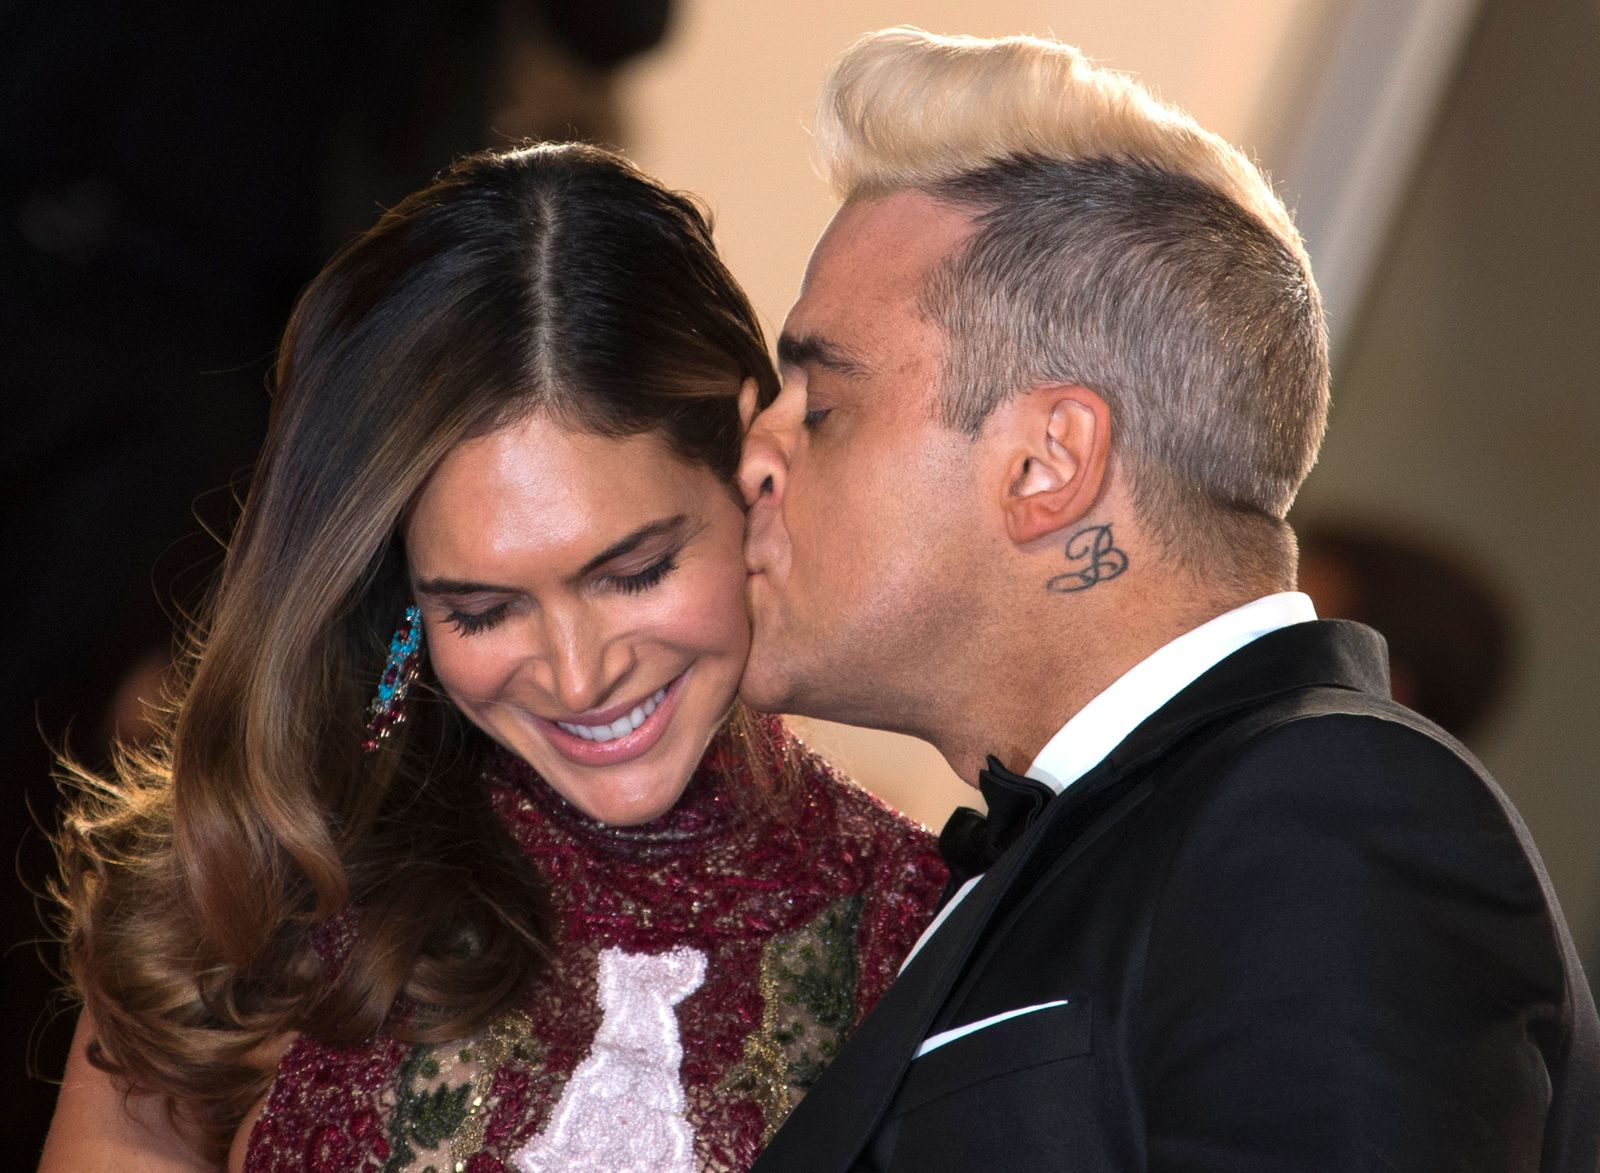 """Singer Robbie Williams kisses his wife Ayda Field as they pose on the red carpet for the screening of the film """"The Sea of Trees"""" in competition at the 68th Cannes Film Festival in Cannes"""